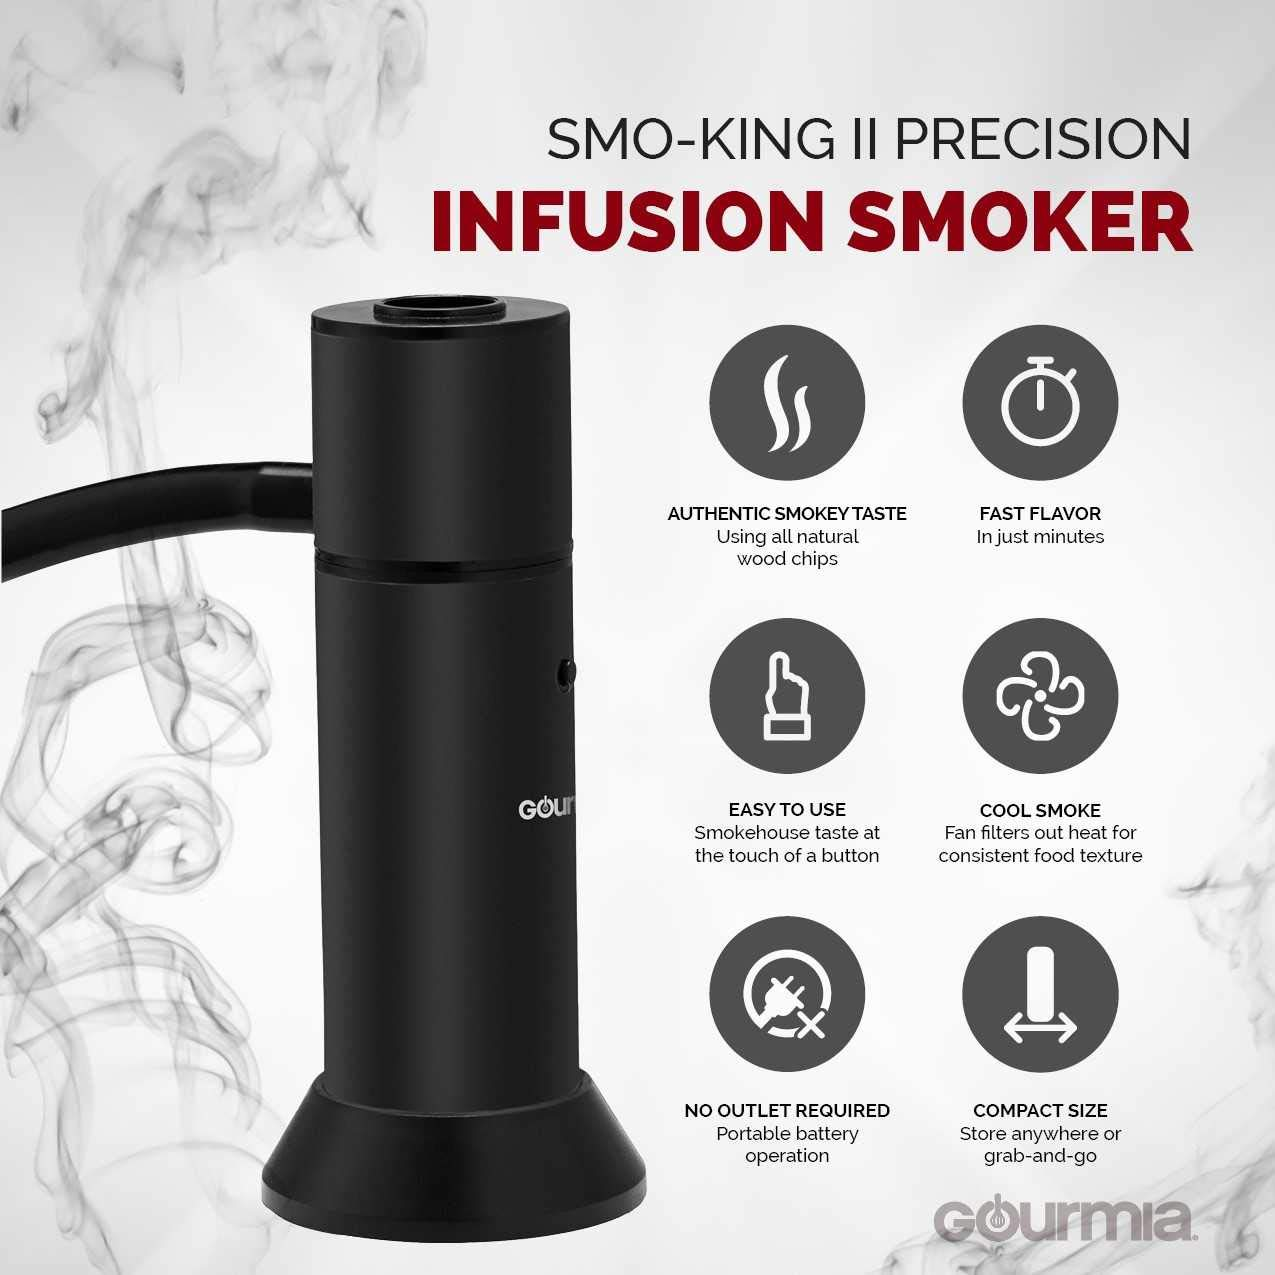 Gourmia GSM220 Portable Infusion Smoker Cool Smoke to Enhance Taste - Battery Operated - Compact & Convenient - Free E-Recipe Book Included by Gourmia (Image #3)